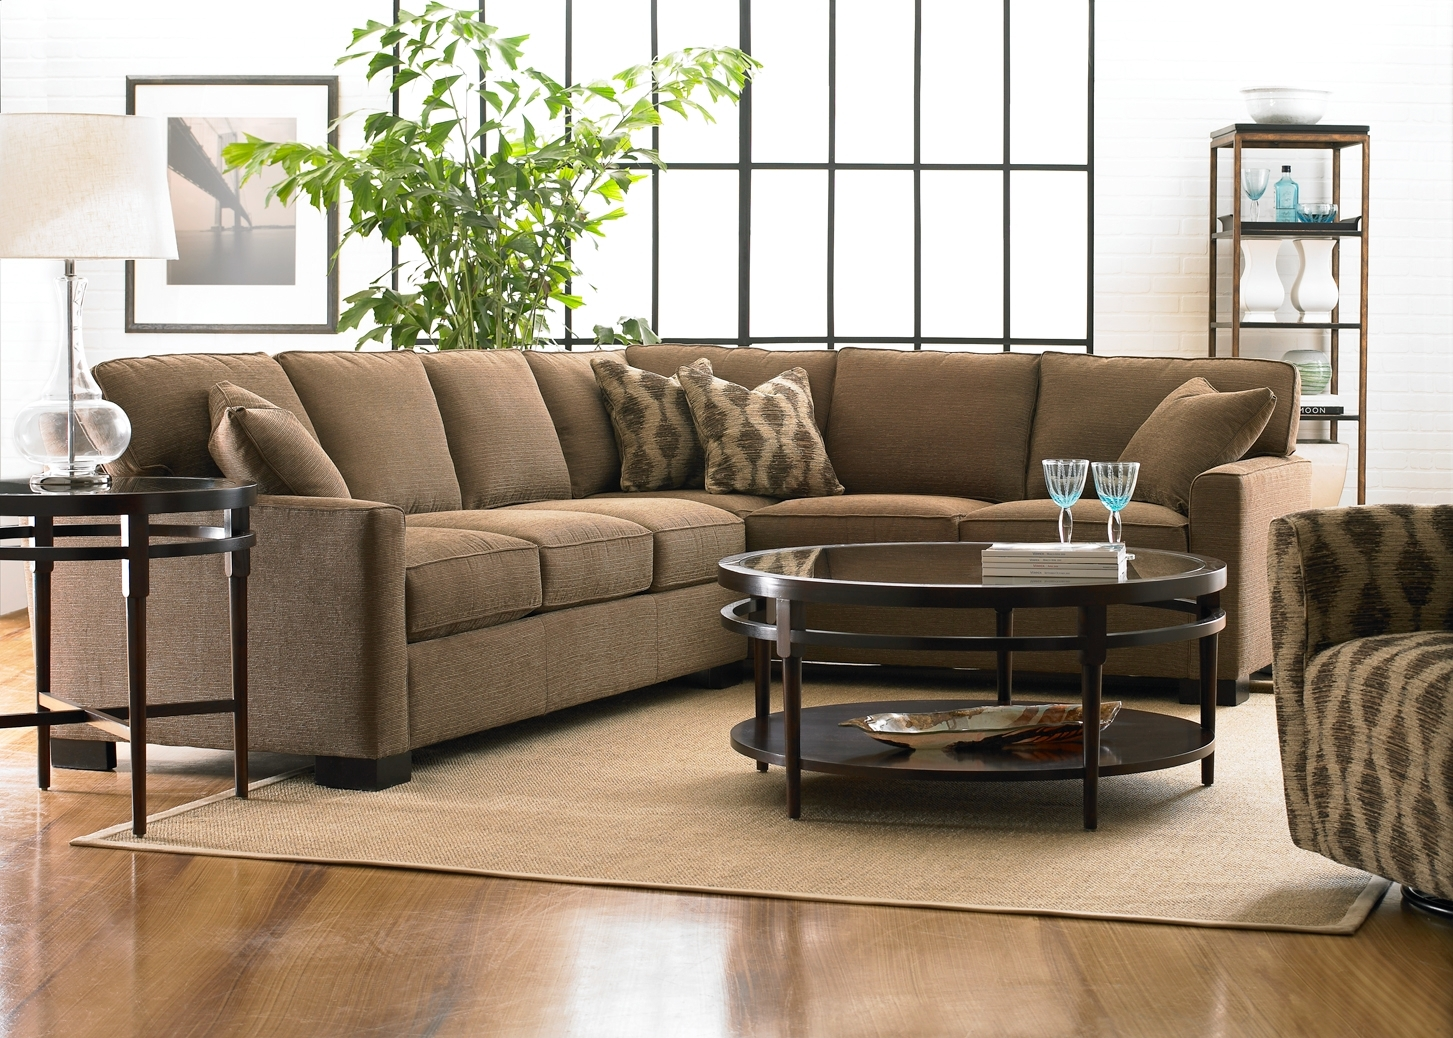 Inspirational Small Space Sectional Sofa 73 Sofas And Couches Ideas Inside Small Spaces Sectional Sofas (Image 5 of 10)